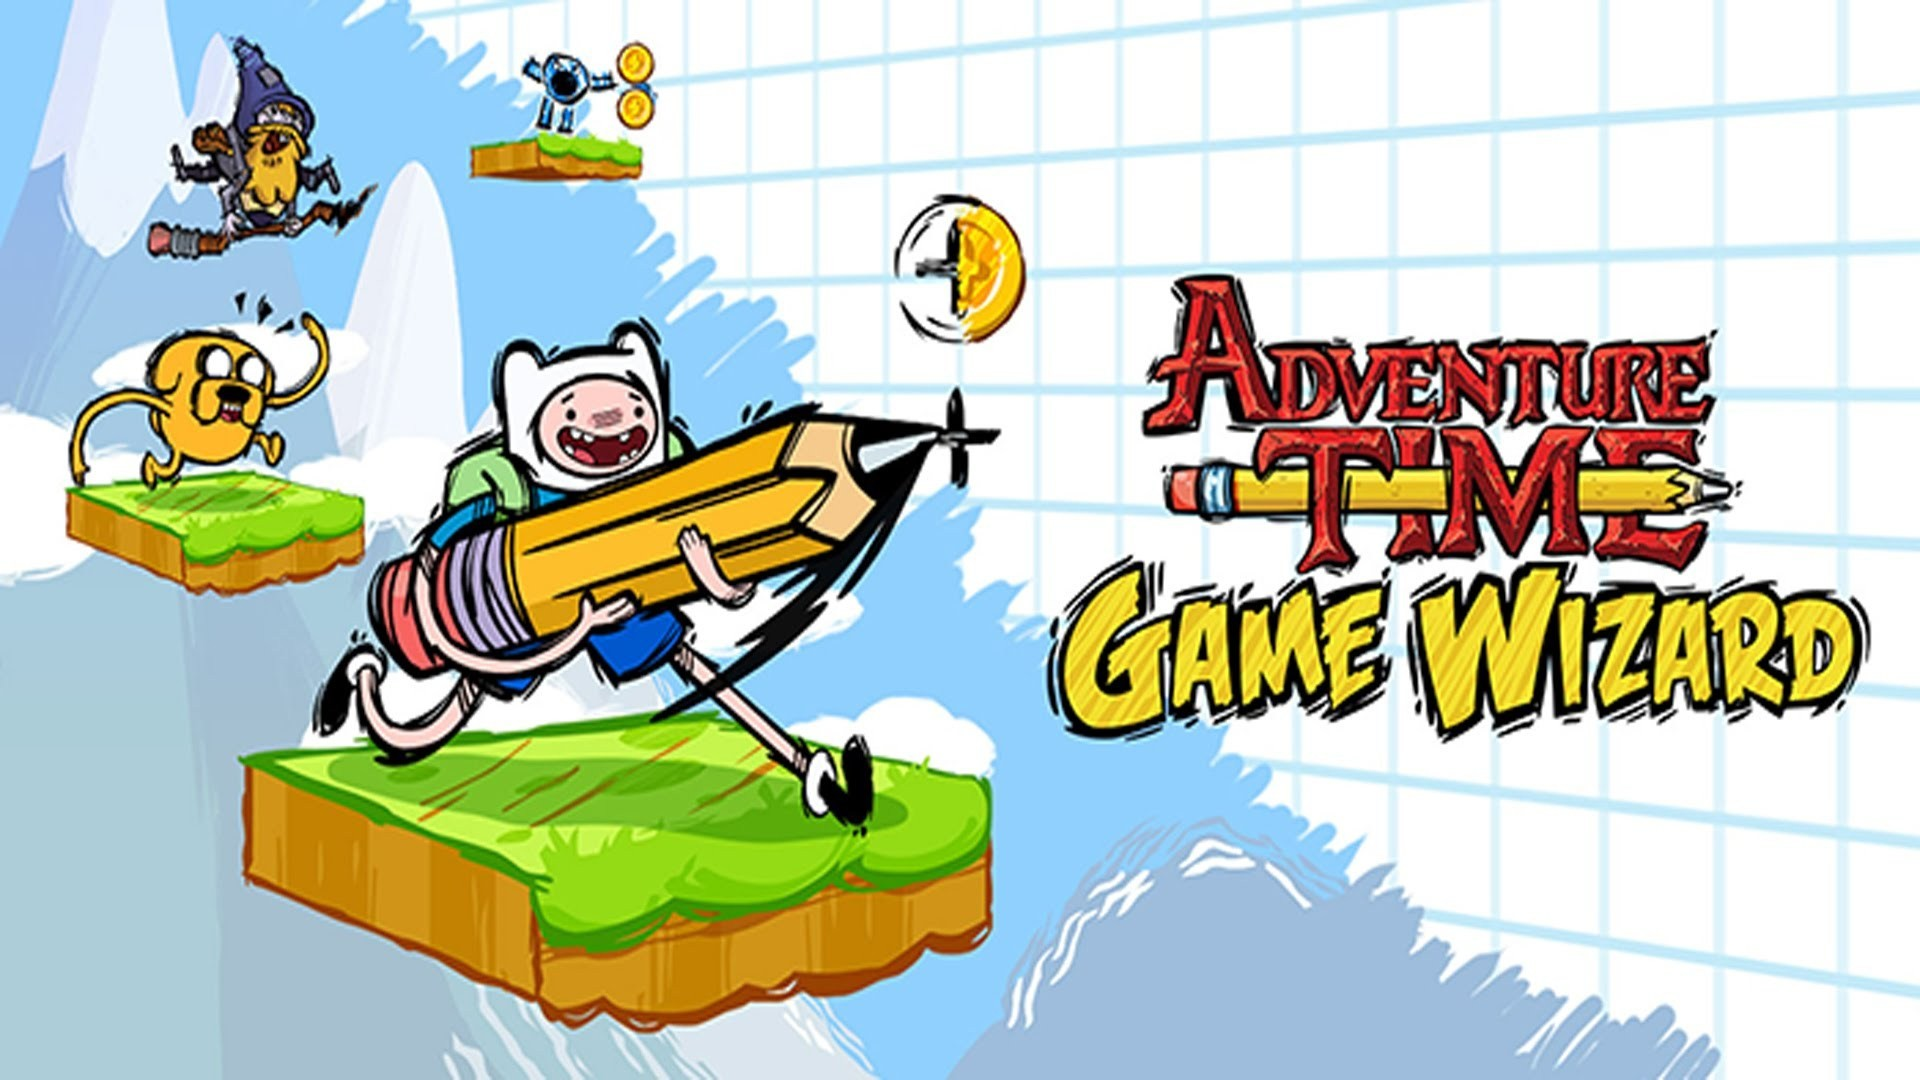 1920x1080 adventure time live wallpaper #576291